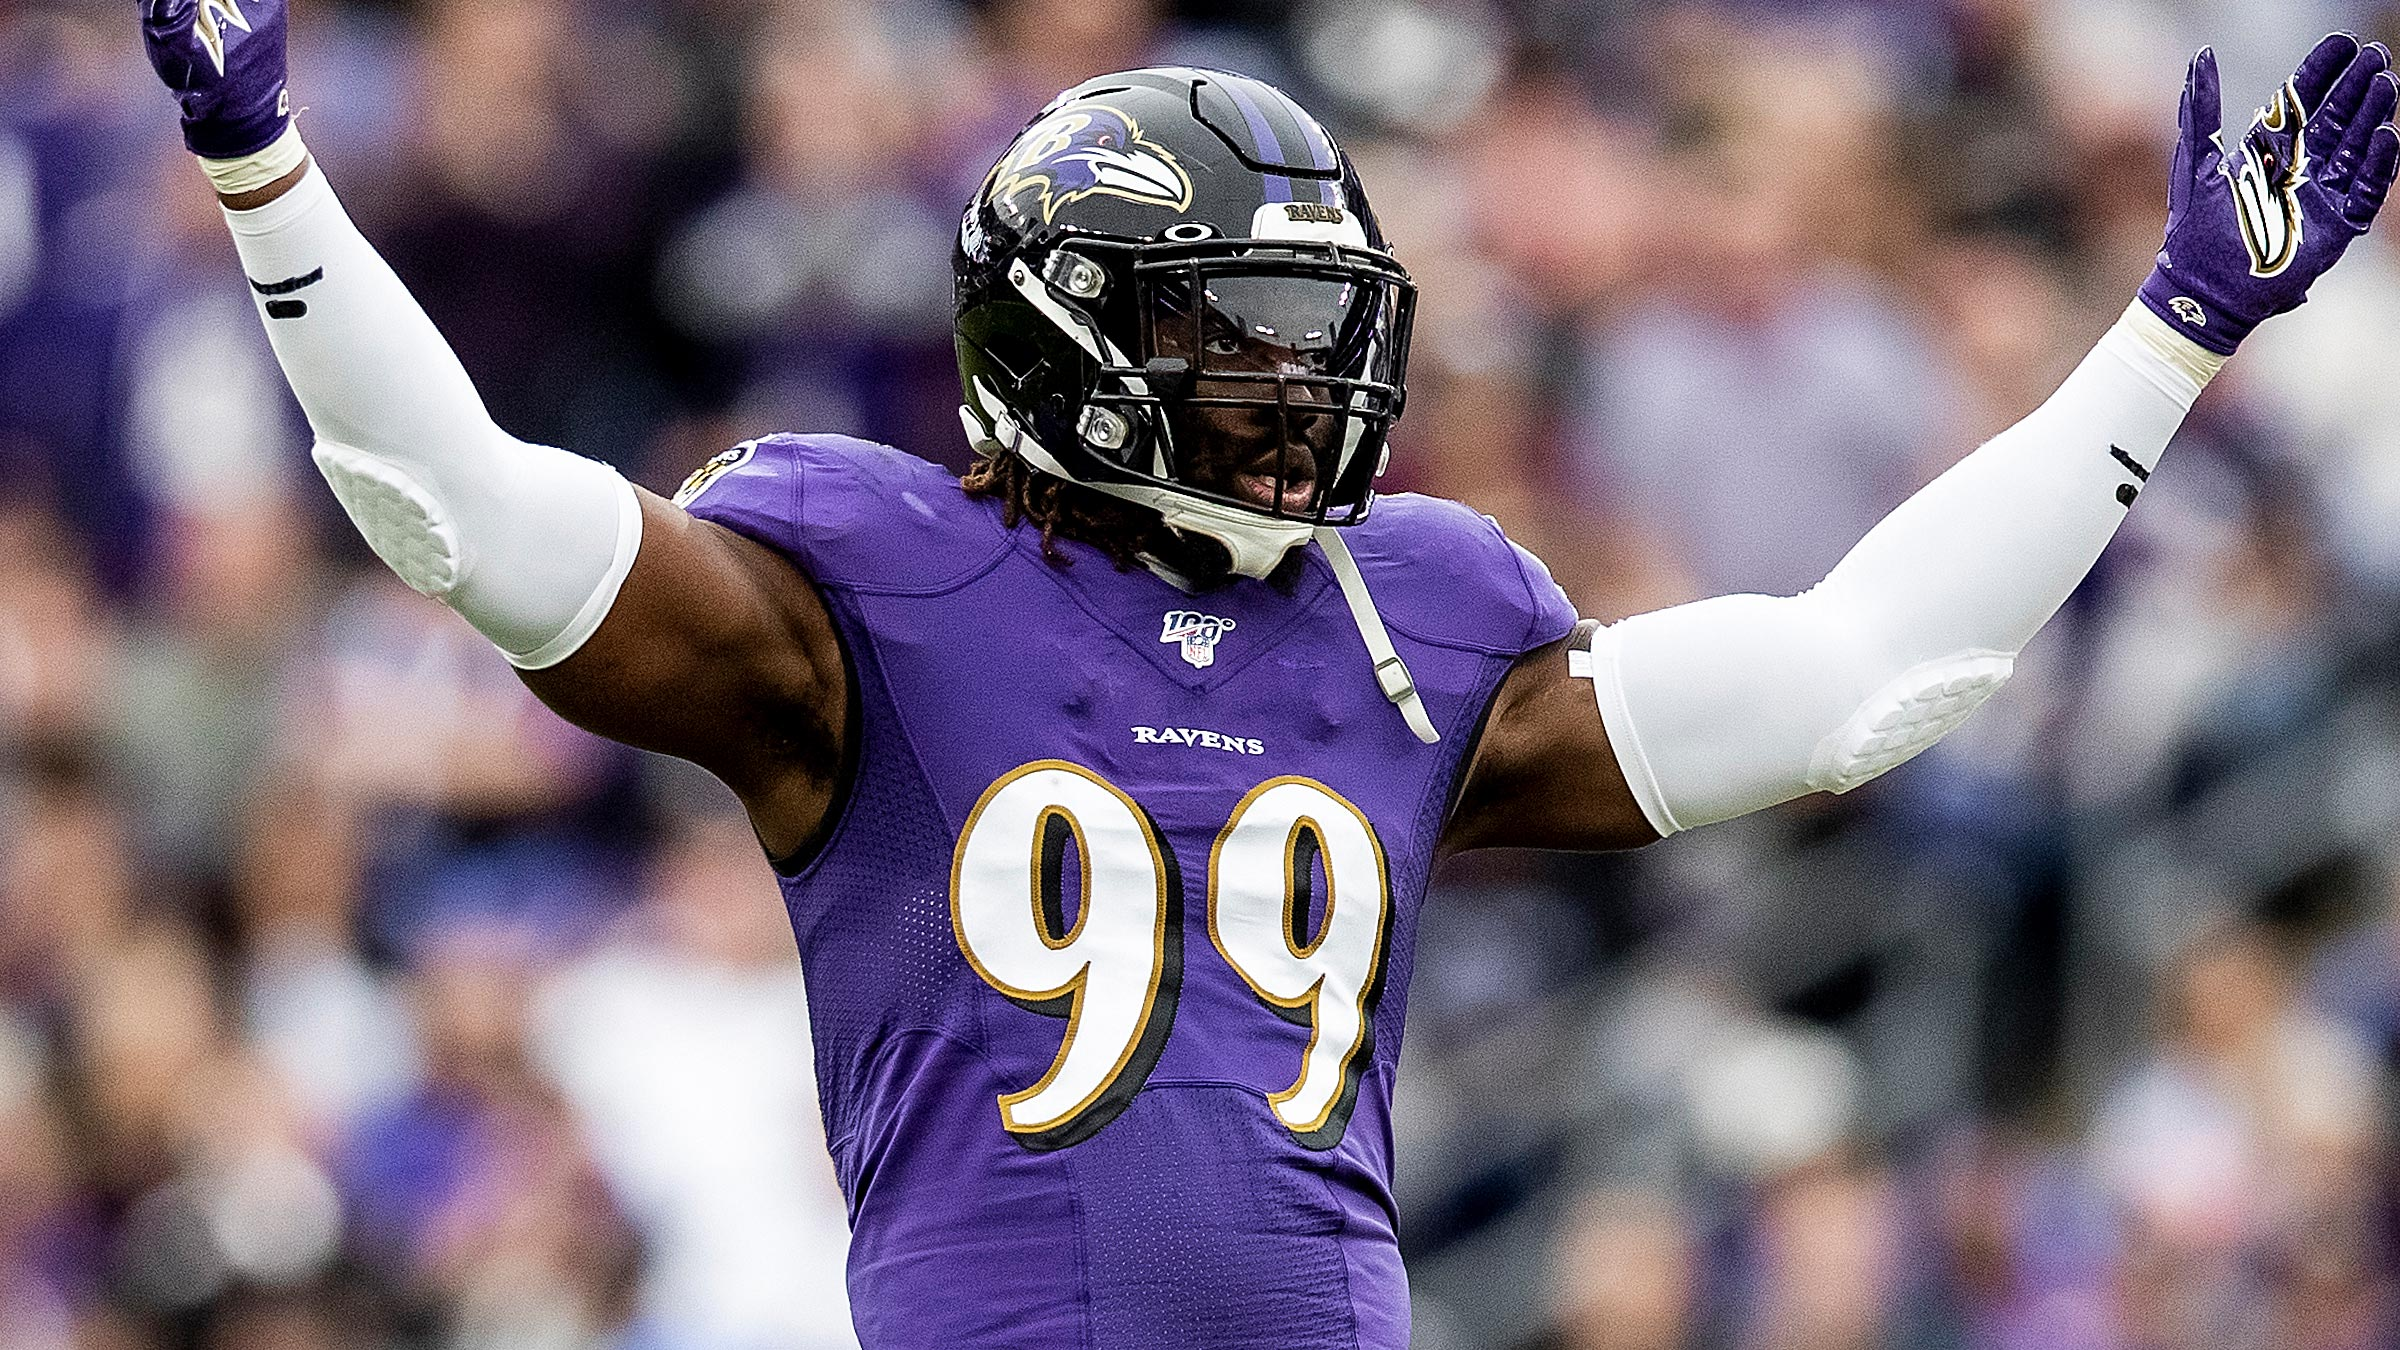 Linebacker do Baltimore Ravens Matthew Judon